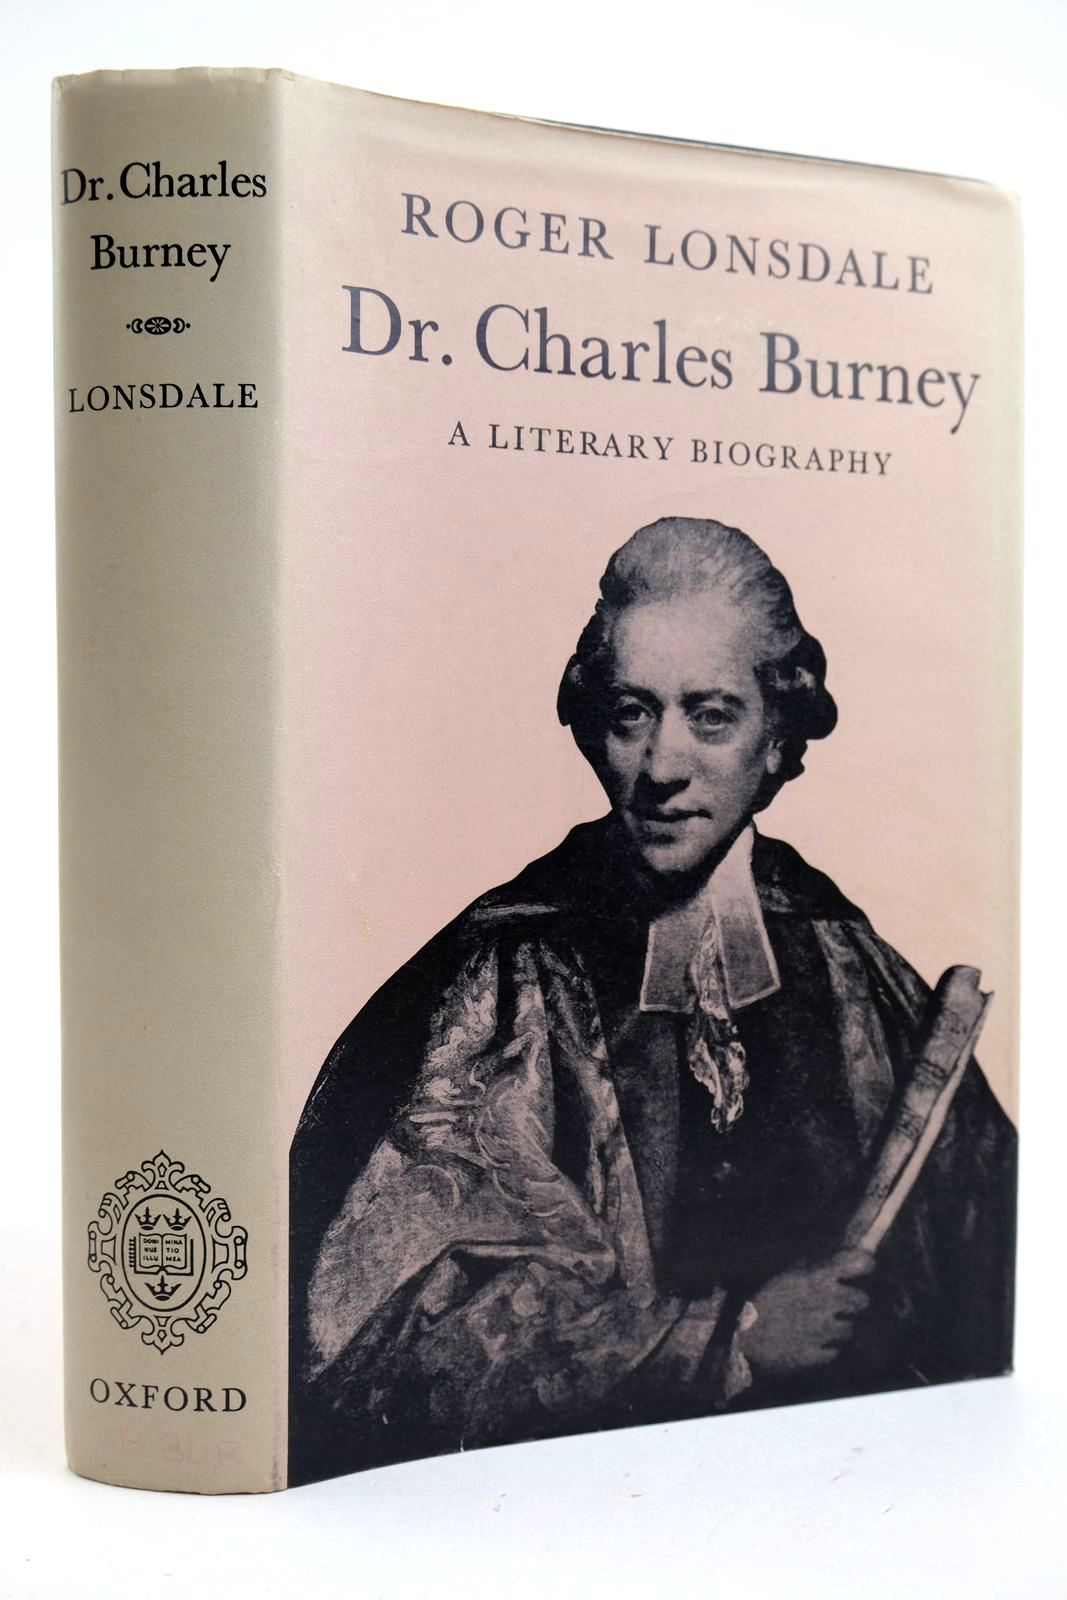 Photo of DR. CHARLES BURNEY A LITERARY BIOGRAPHY- Stock Number: 2132942